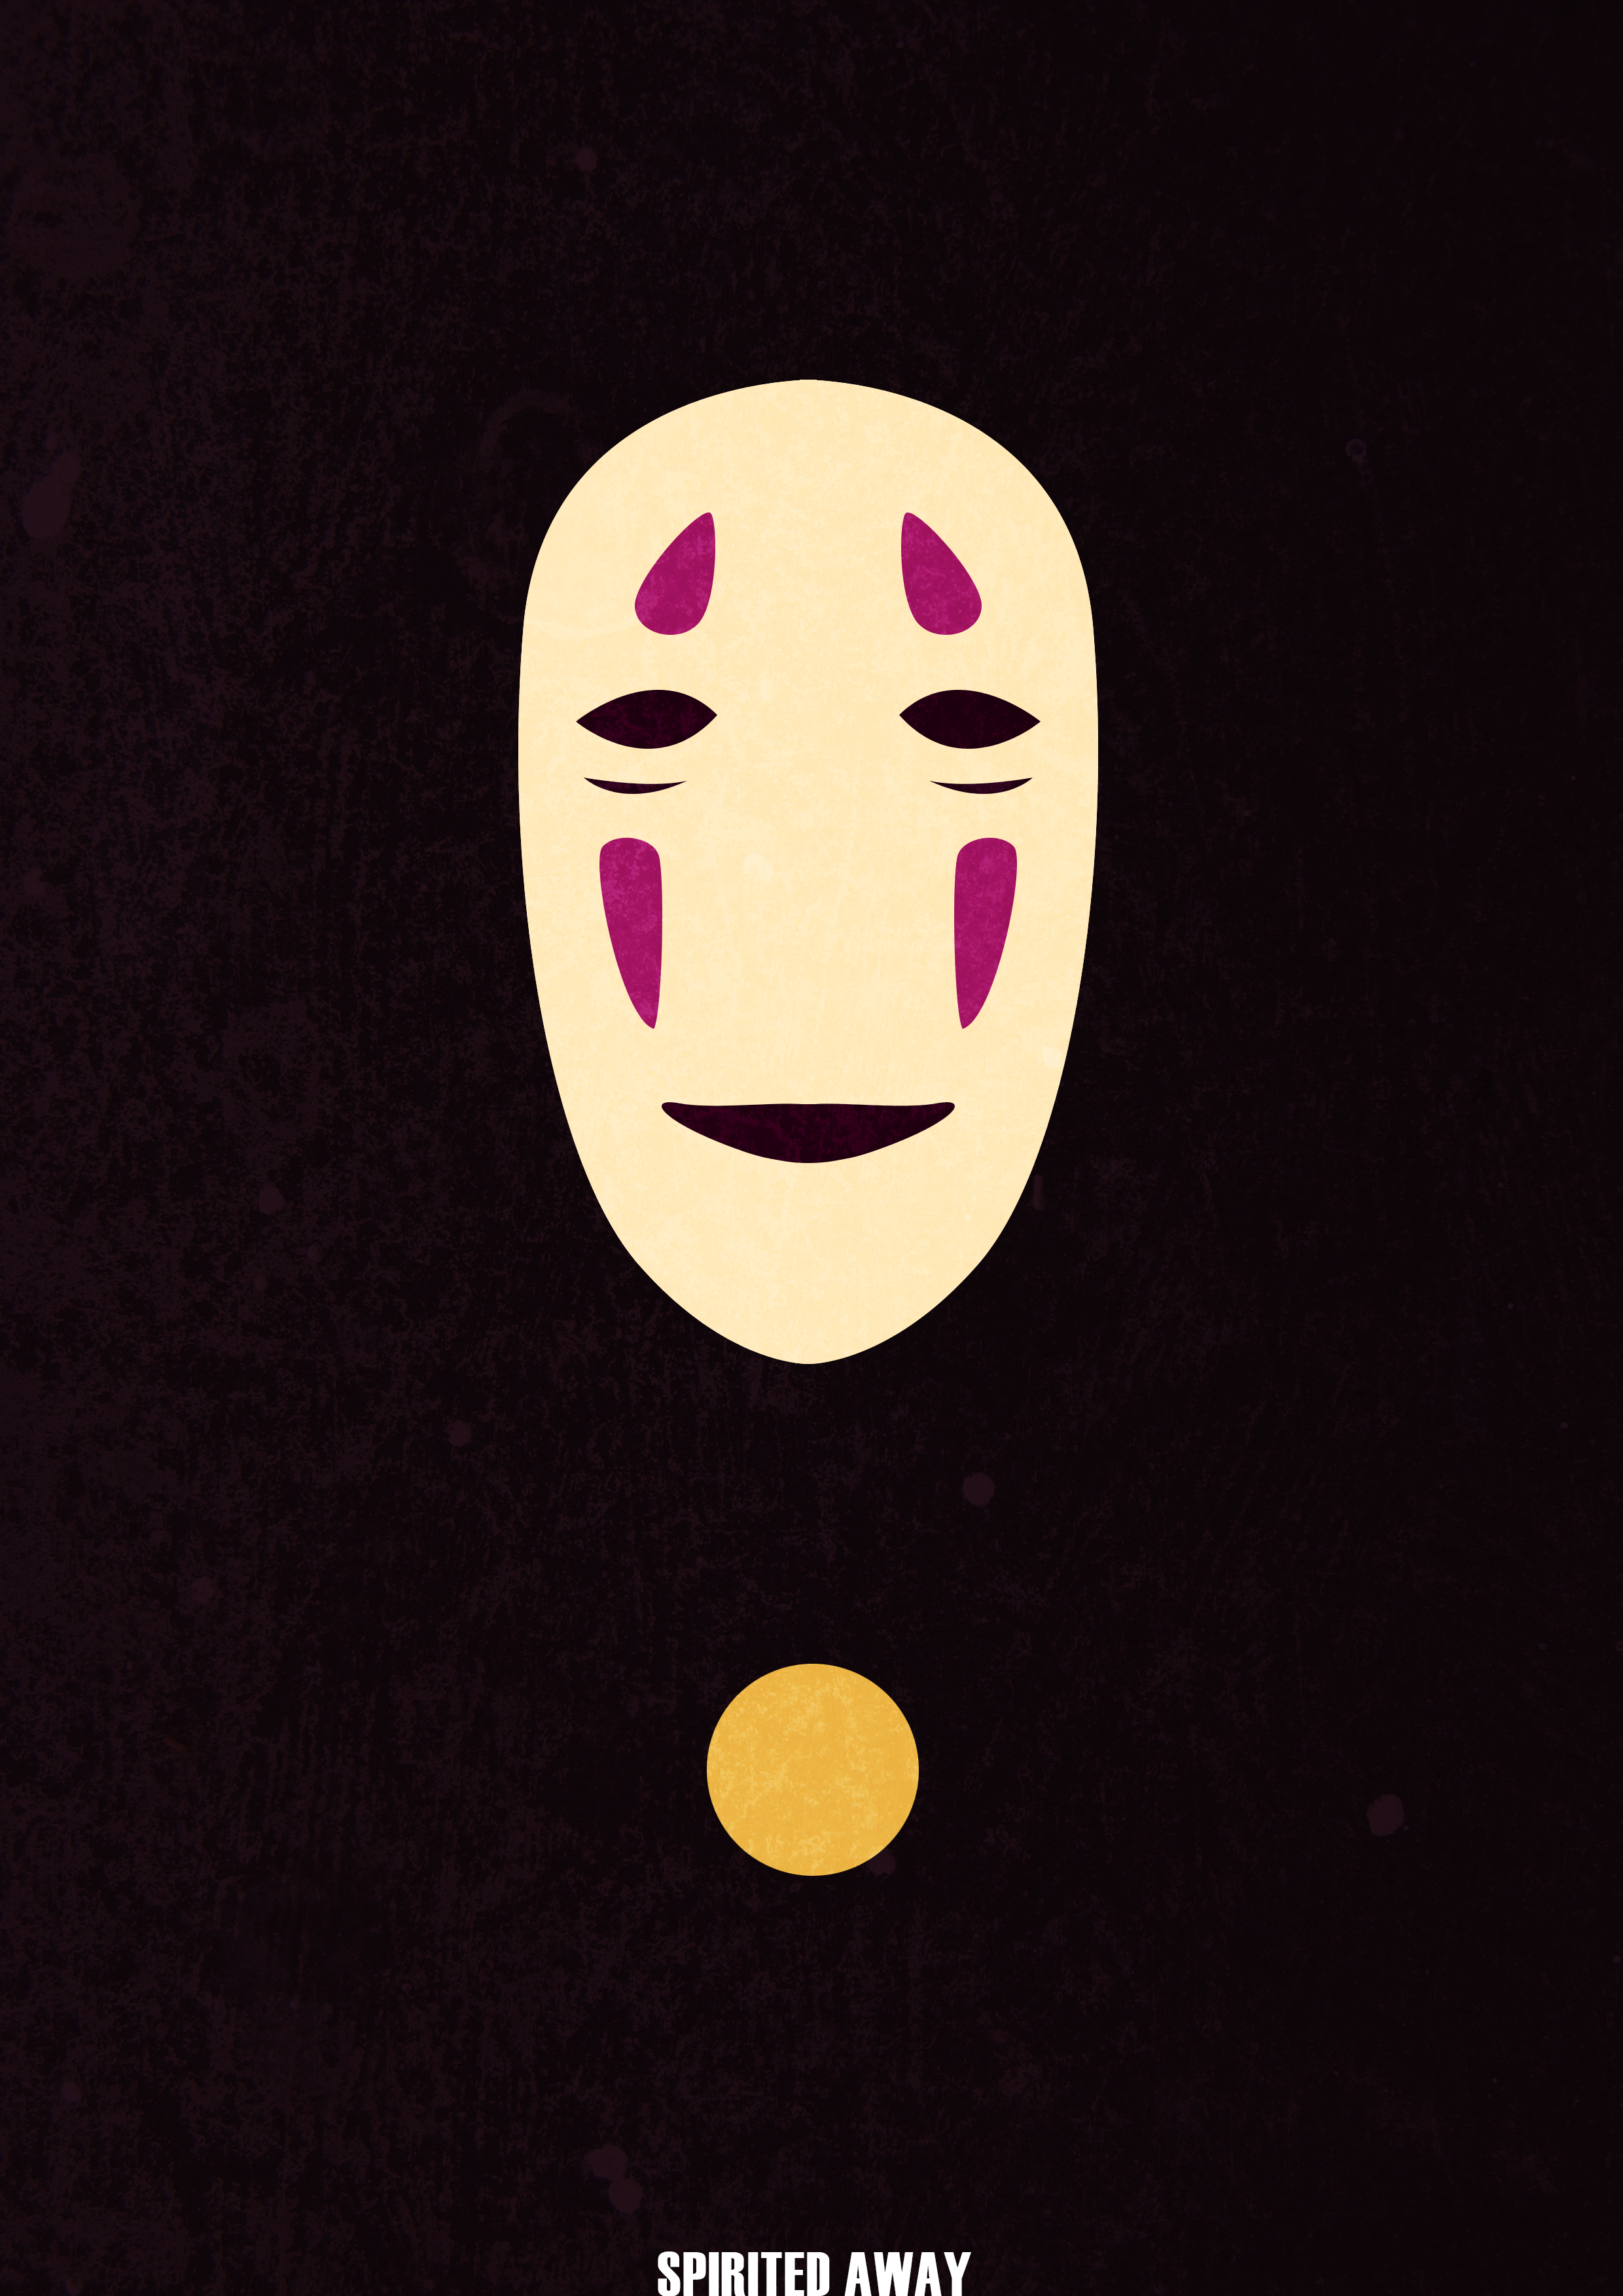 Minimalist spirited away poster by boredbored on deviantart for Minimal art reddit